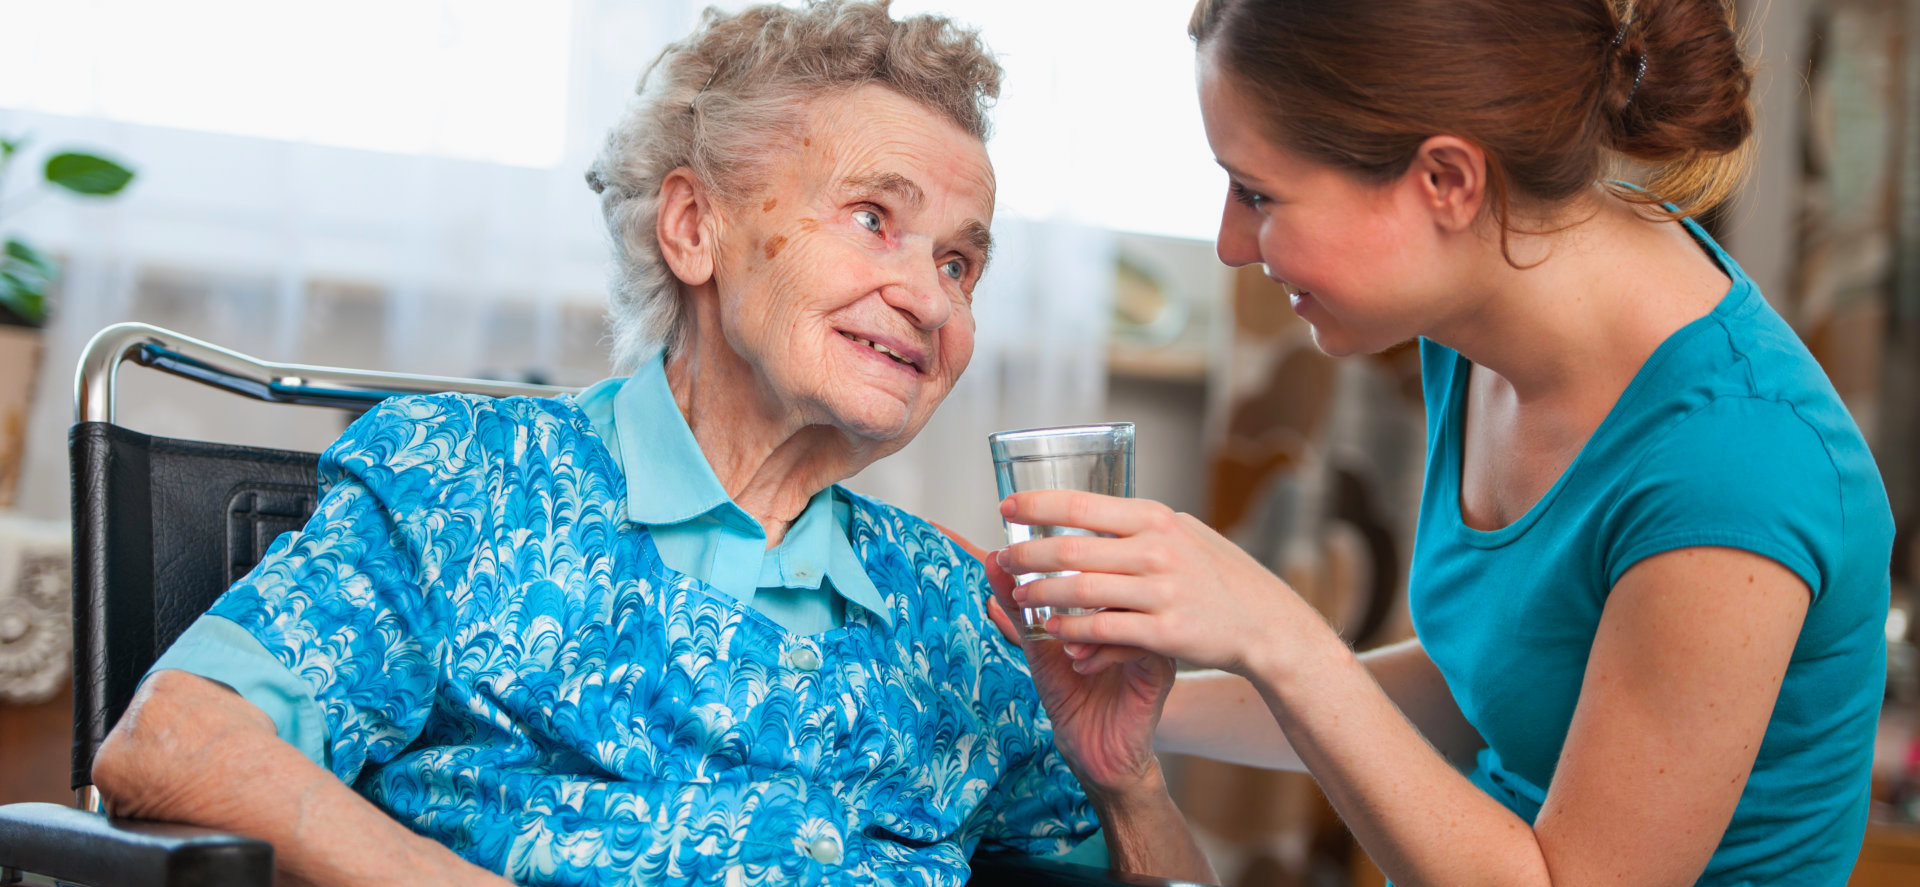 caregiver serving water to an old woman